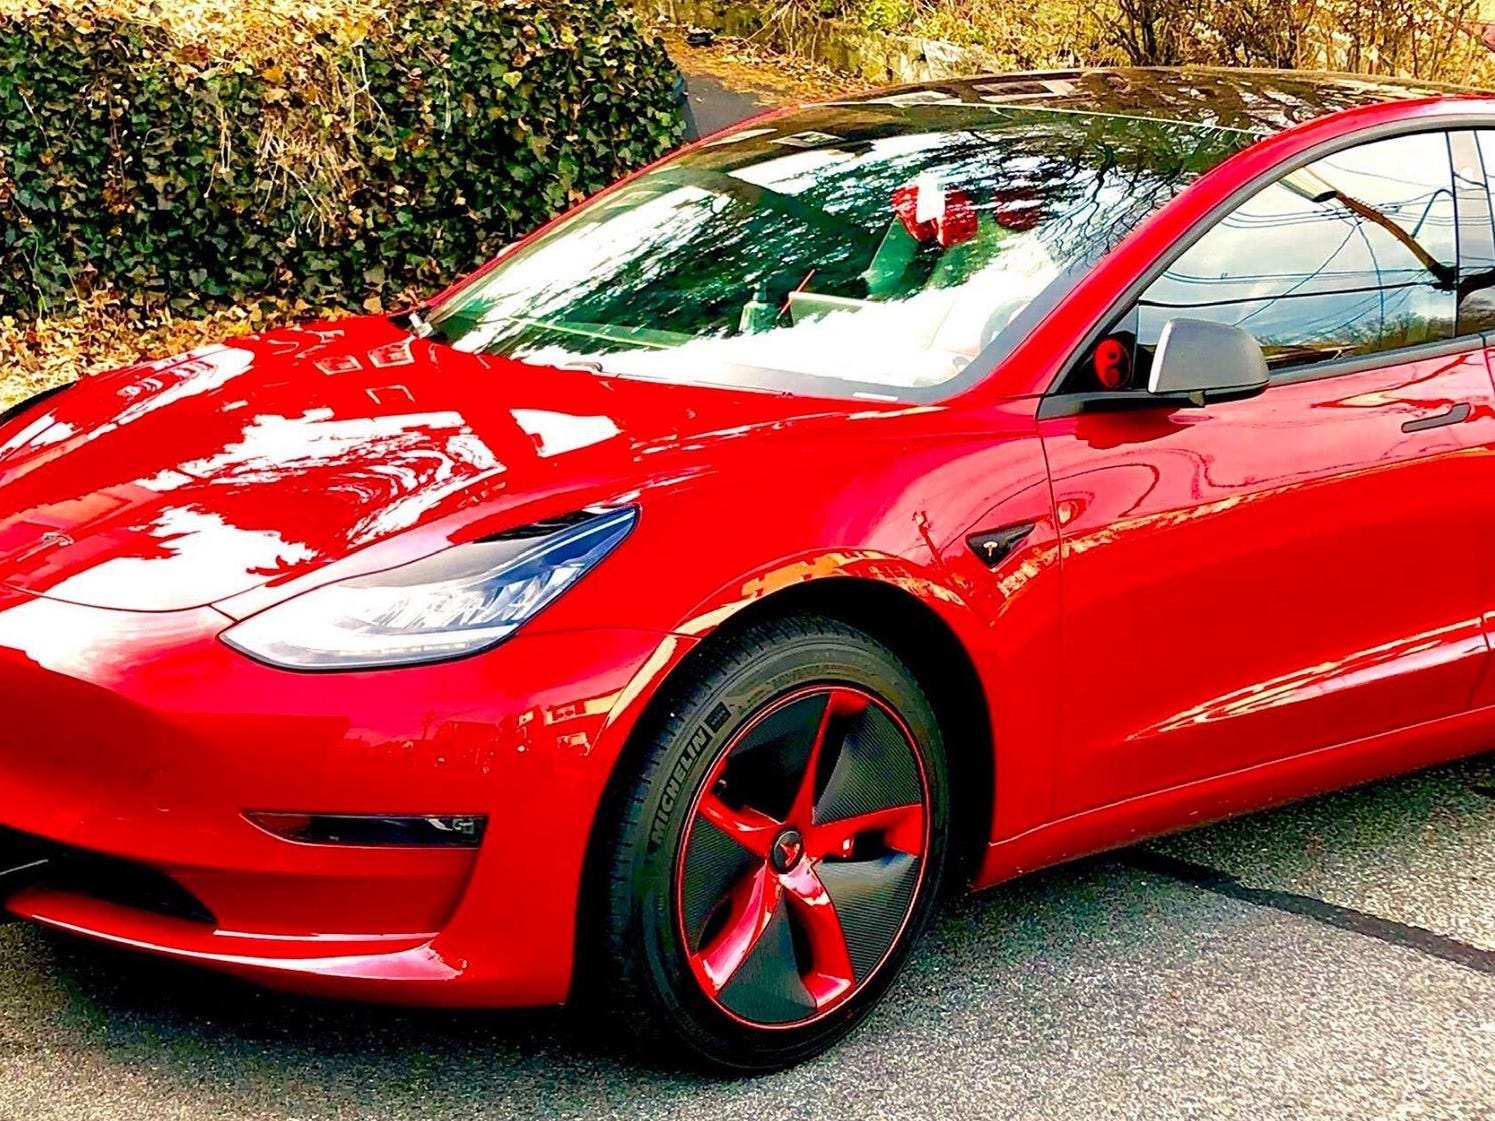 """Ruby Rose"" is Adam Etkin's 2018 long-range, rear wheel drive Tesla Model 3, with chrome delete and custom Aero wheel covers."